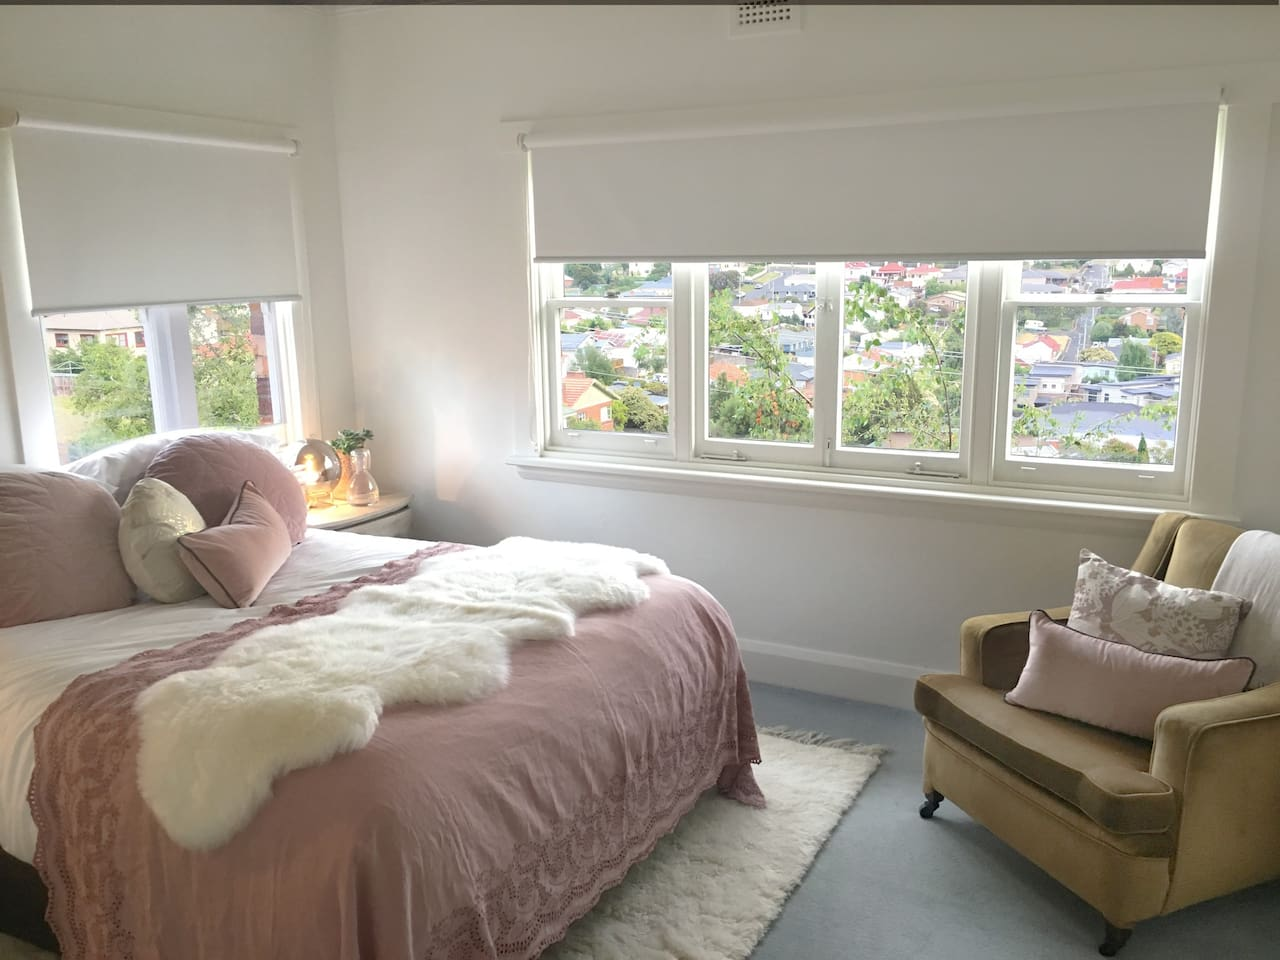 Bedroom 1 with views looking over South Launceston